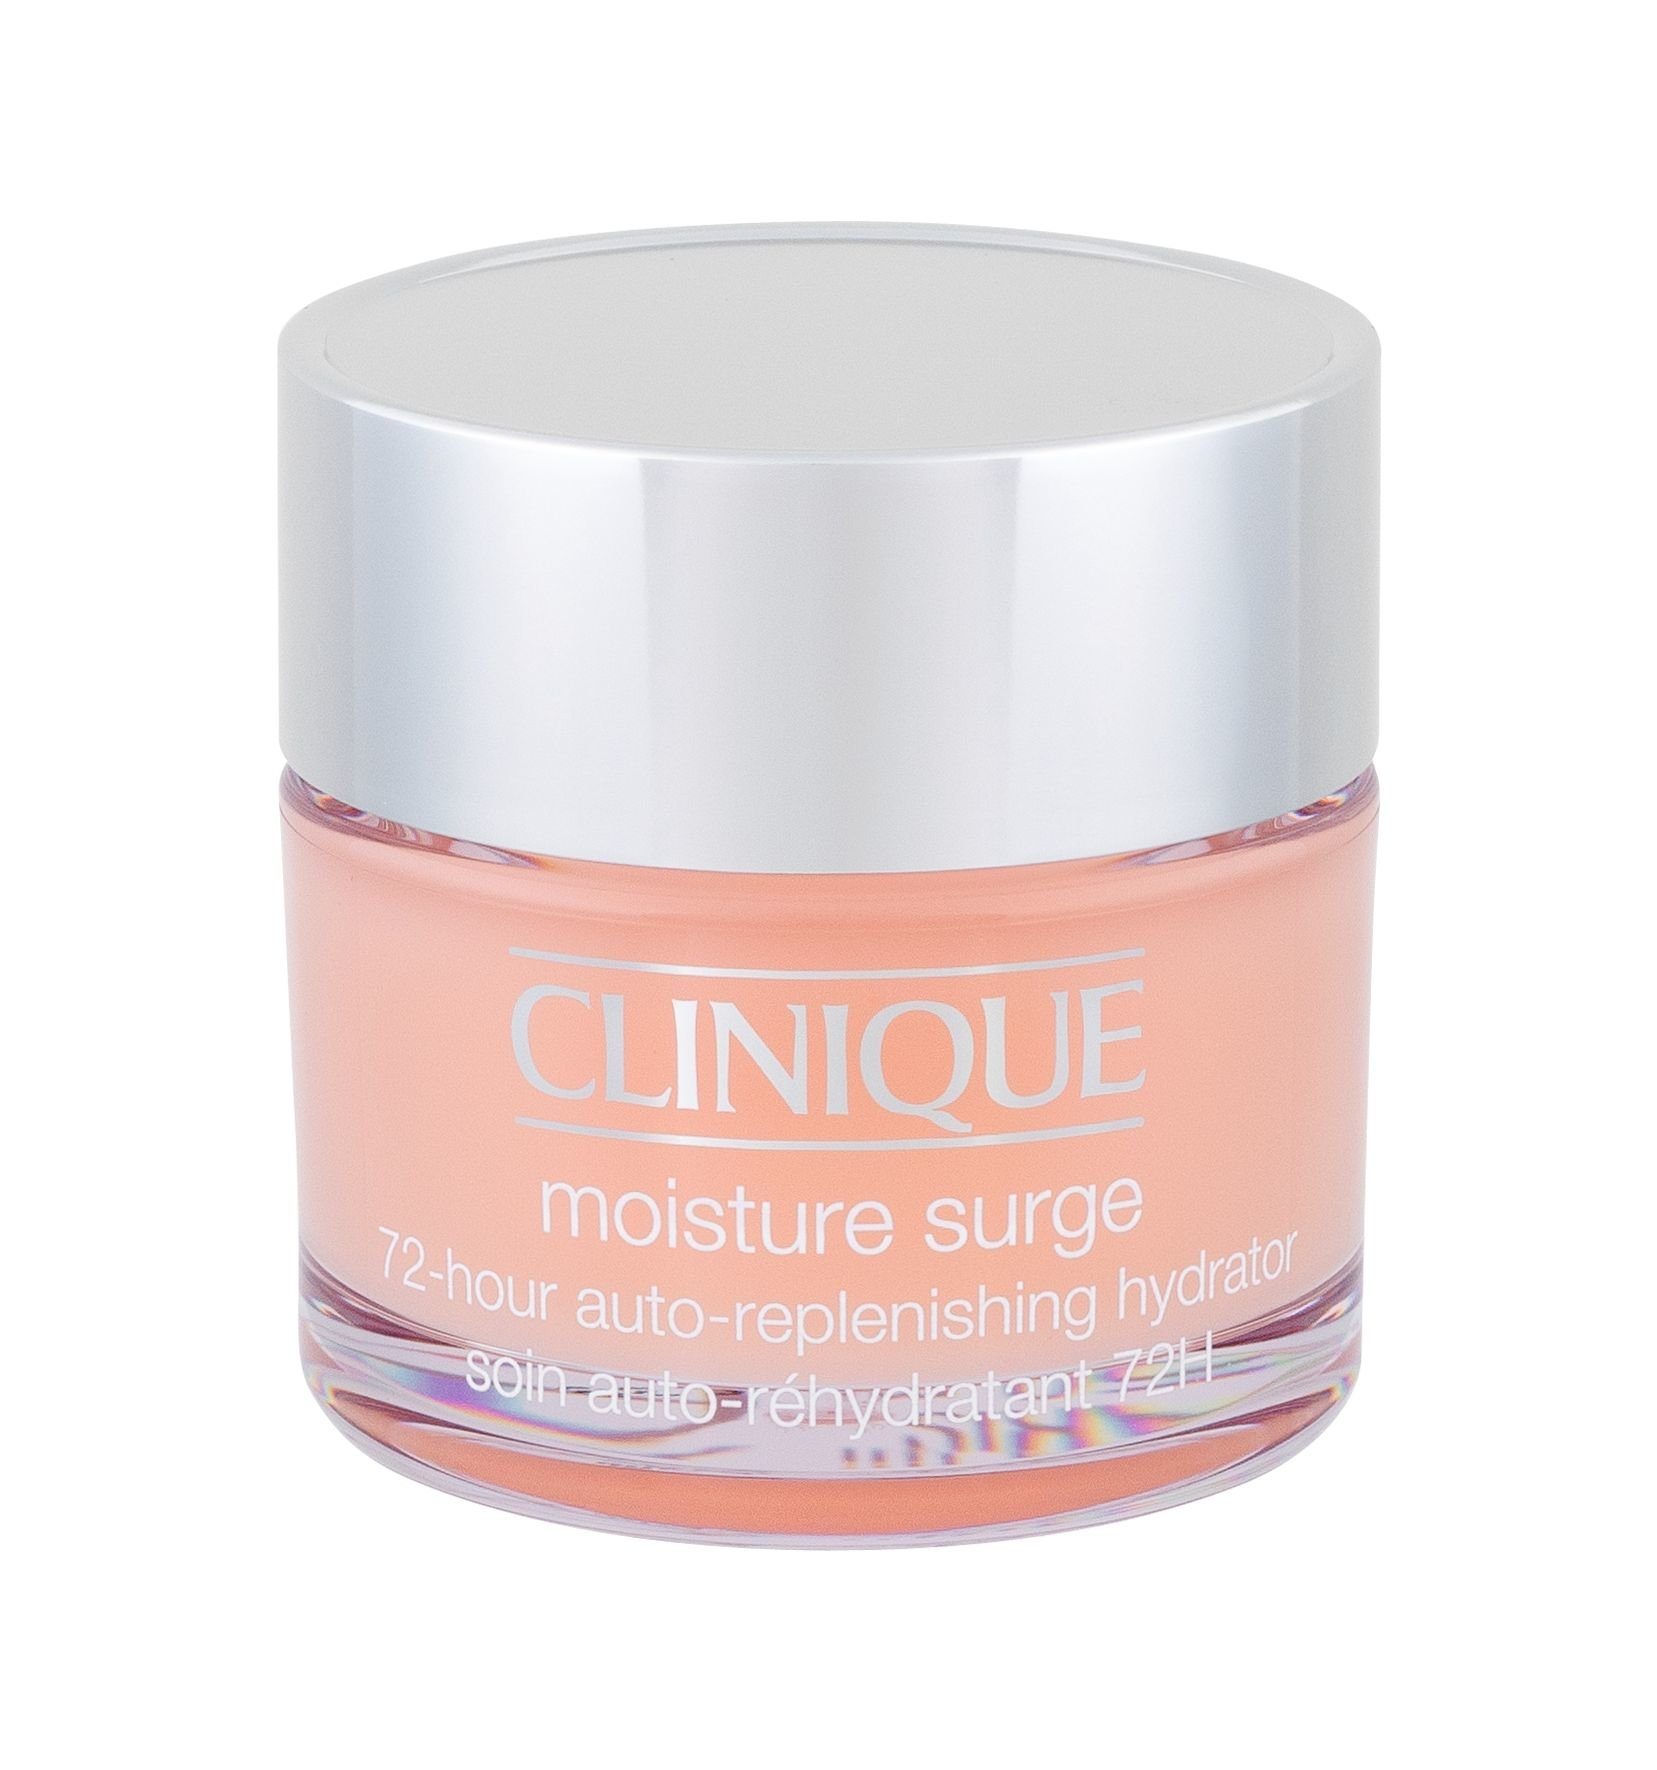 Clinique Moisture Surge Day Cream 50ml